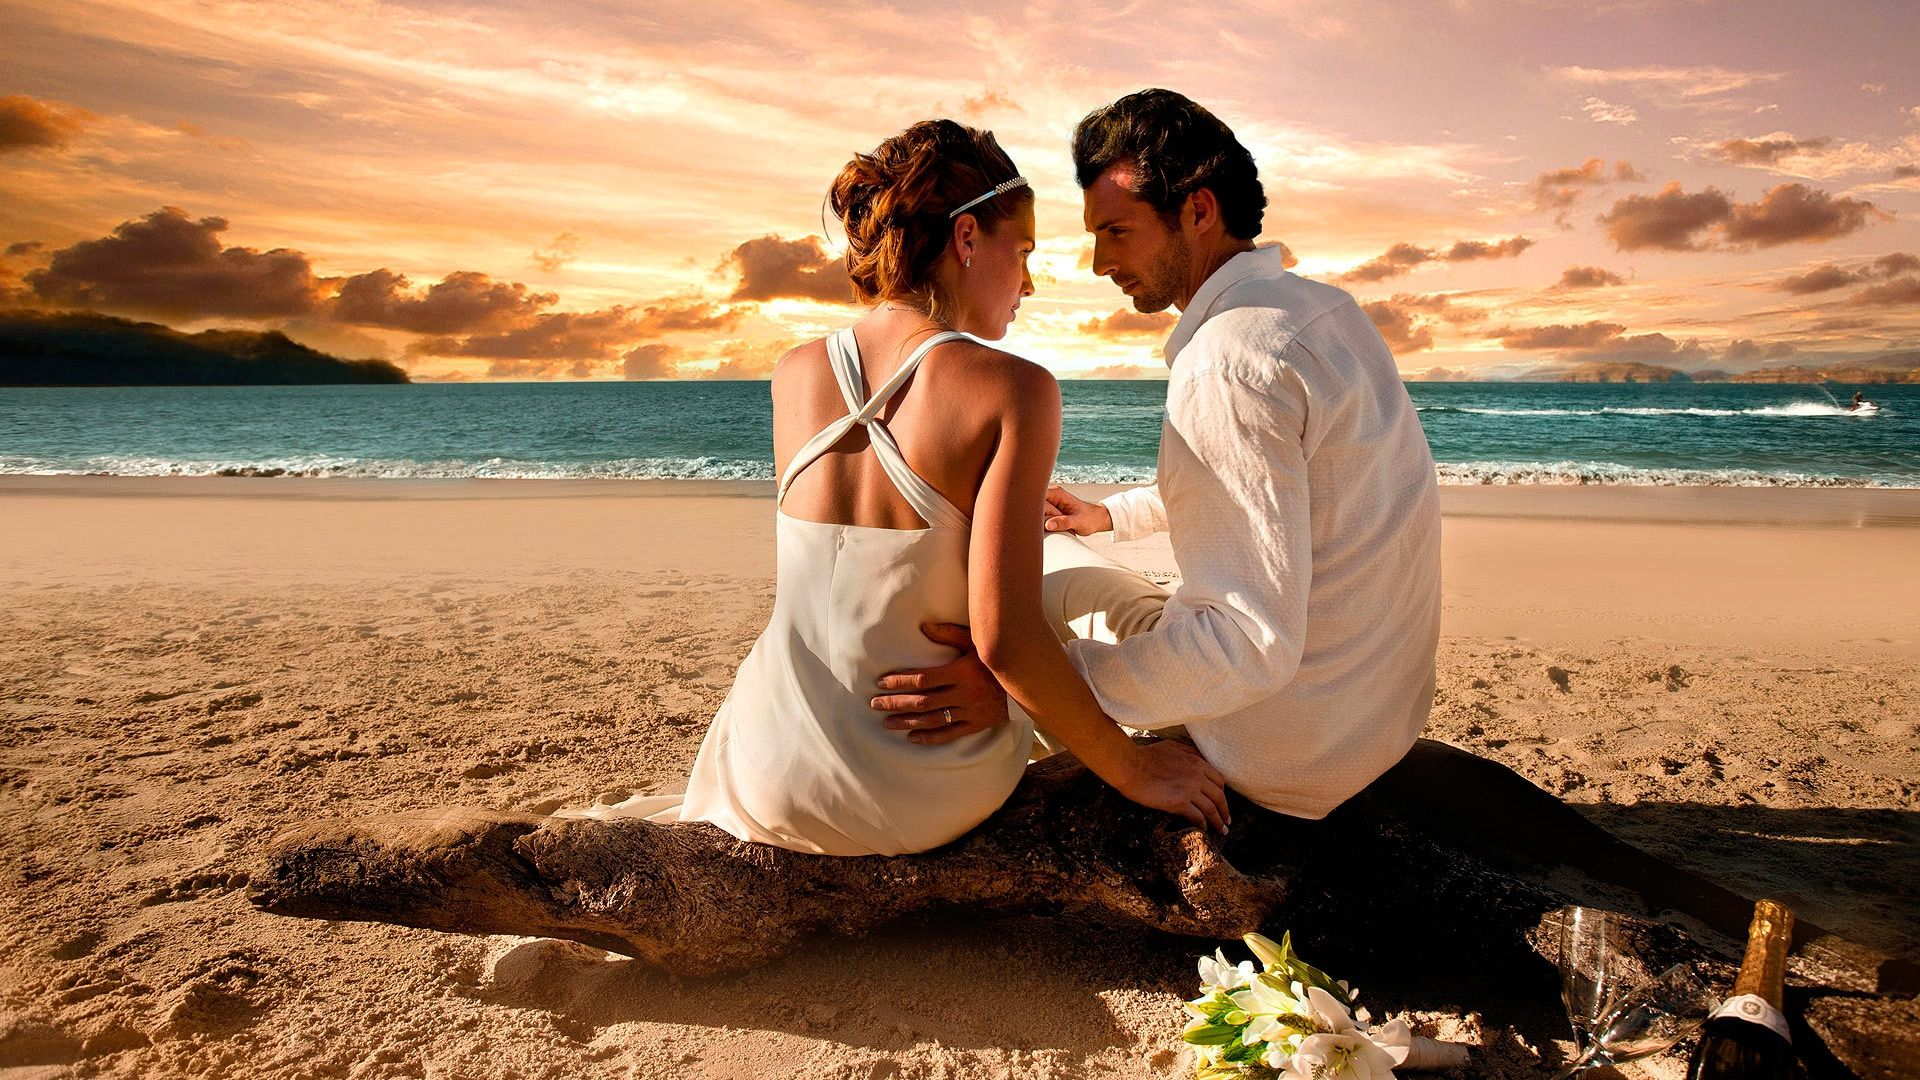 Image Of Love hd picture